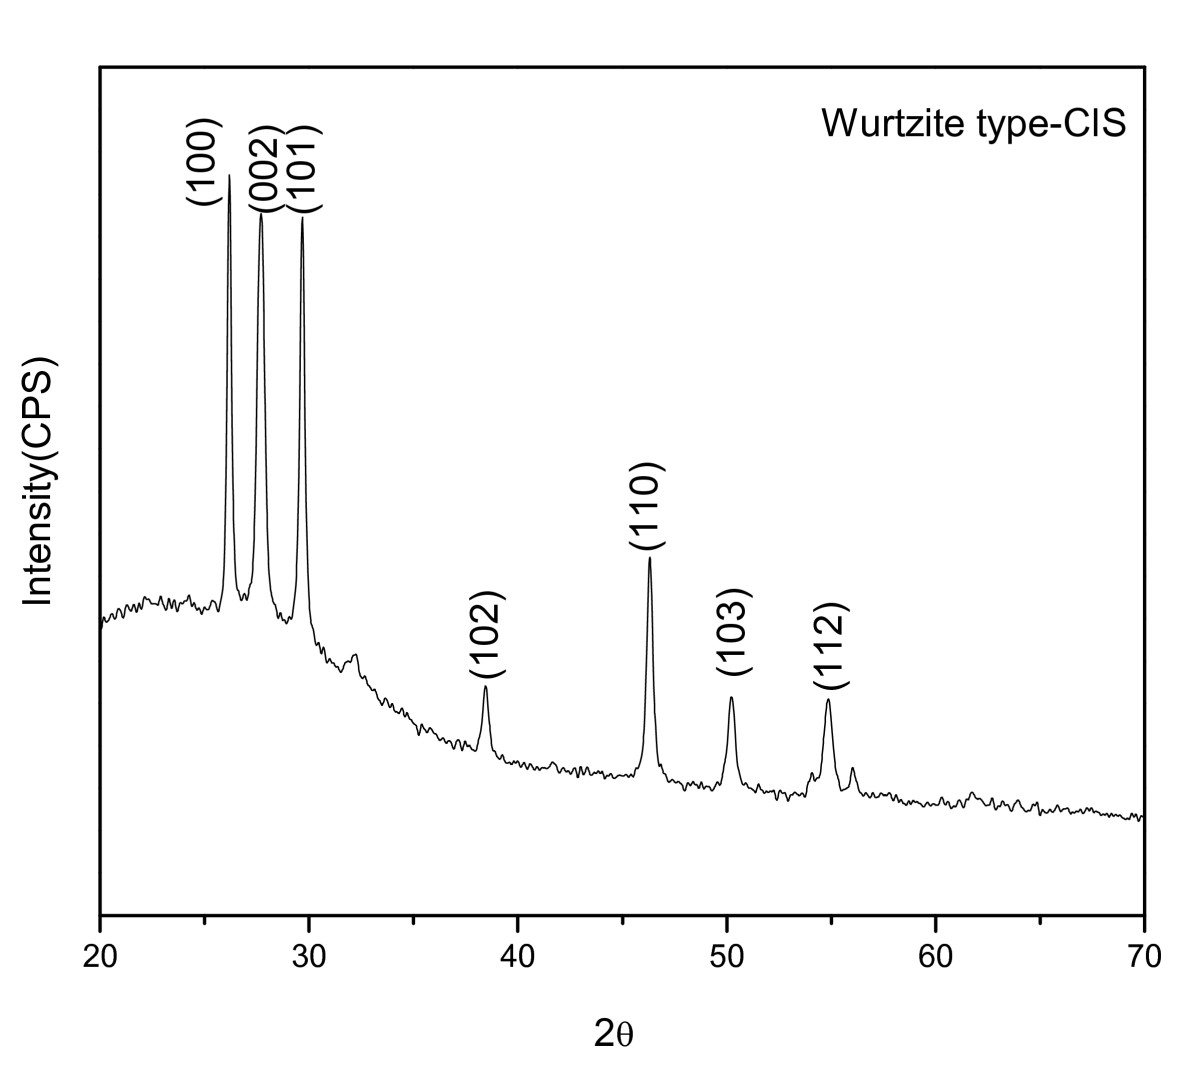 http://static-content.springer.com/image/art%3A10.1186%2F1556-276X-6-562/MediaObjects/11671_2011_Article_313_Fig1_HTML.jpg